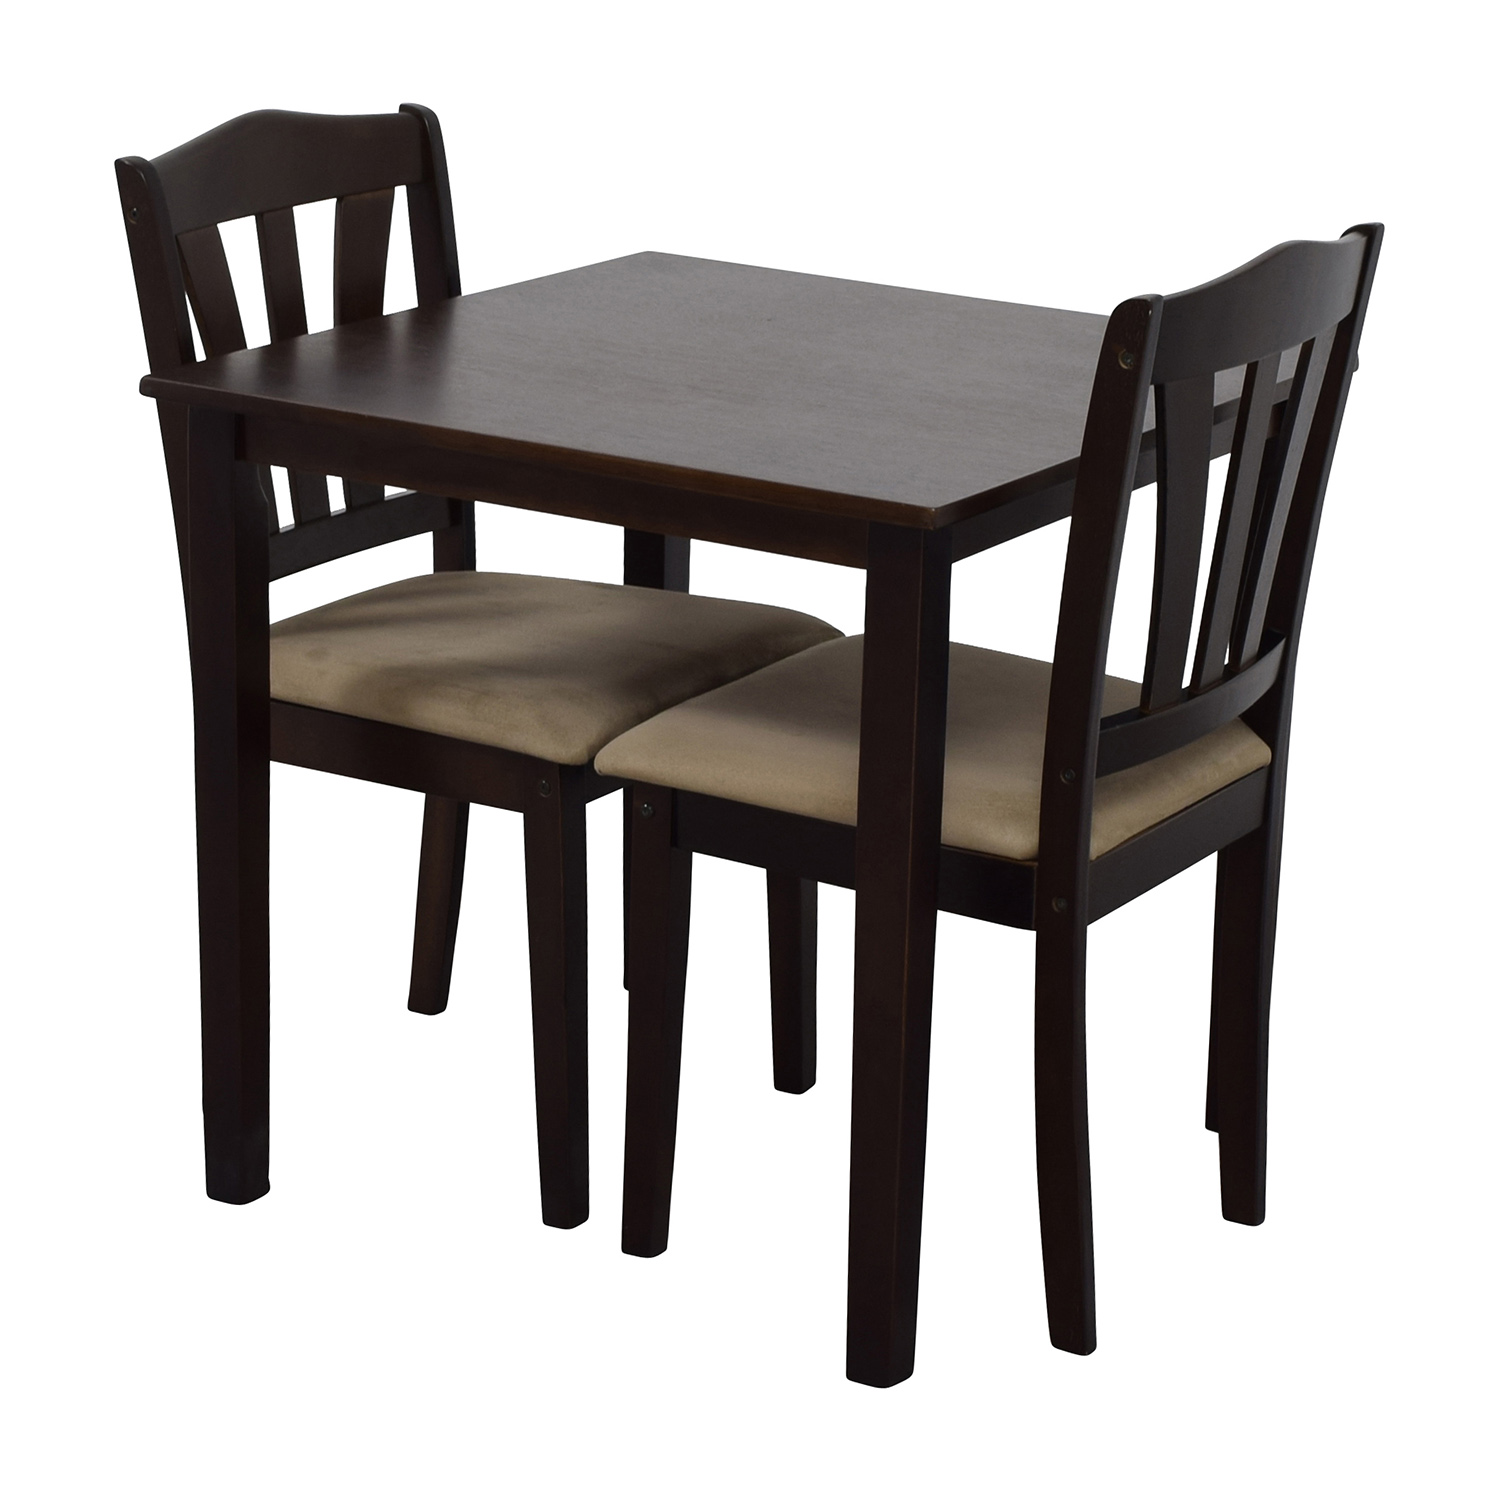 Used Restaurant Tables And Chairs 46 Off Wood Dining Table And Beige Upholstered Chairs